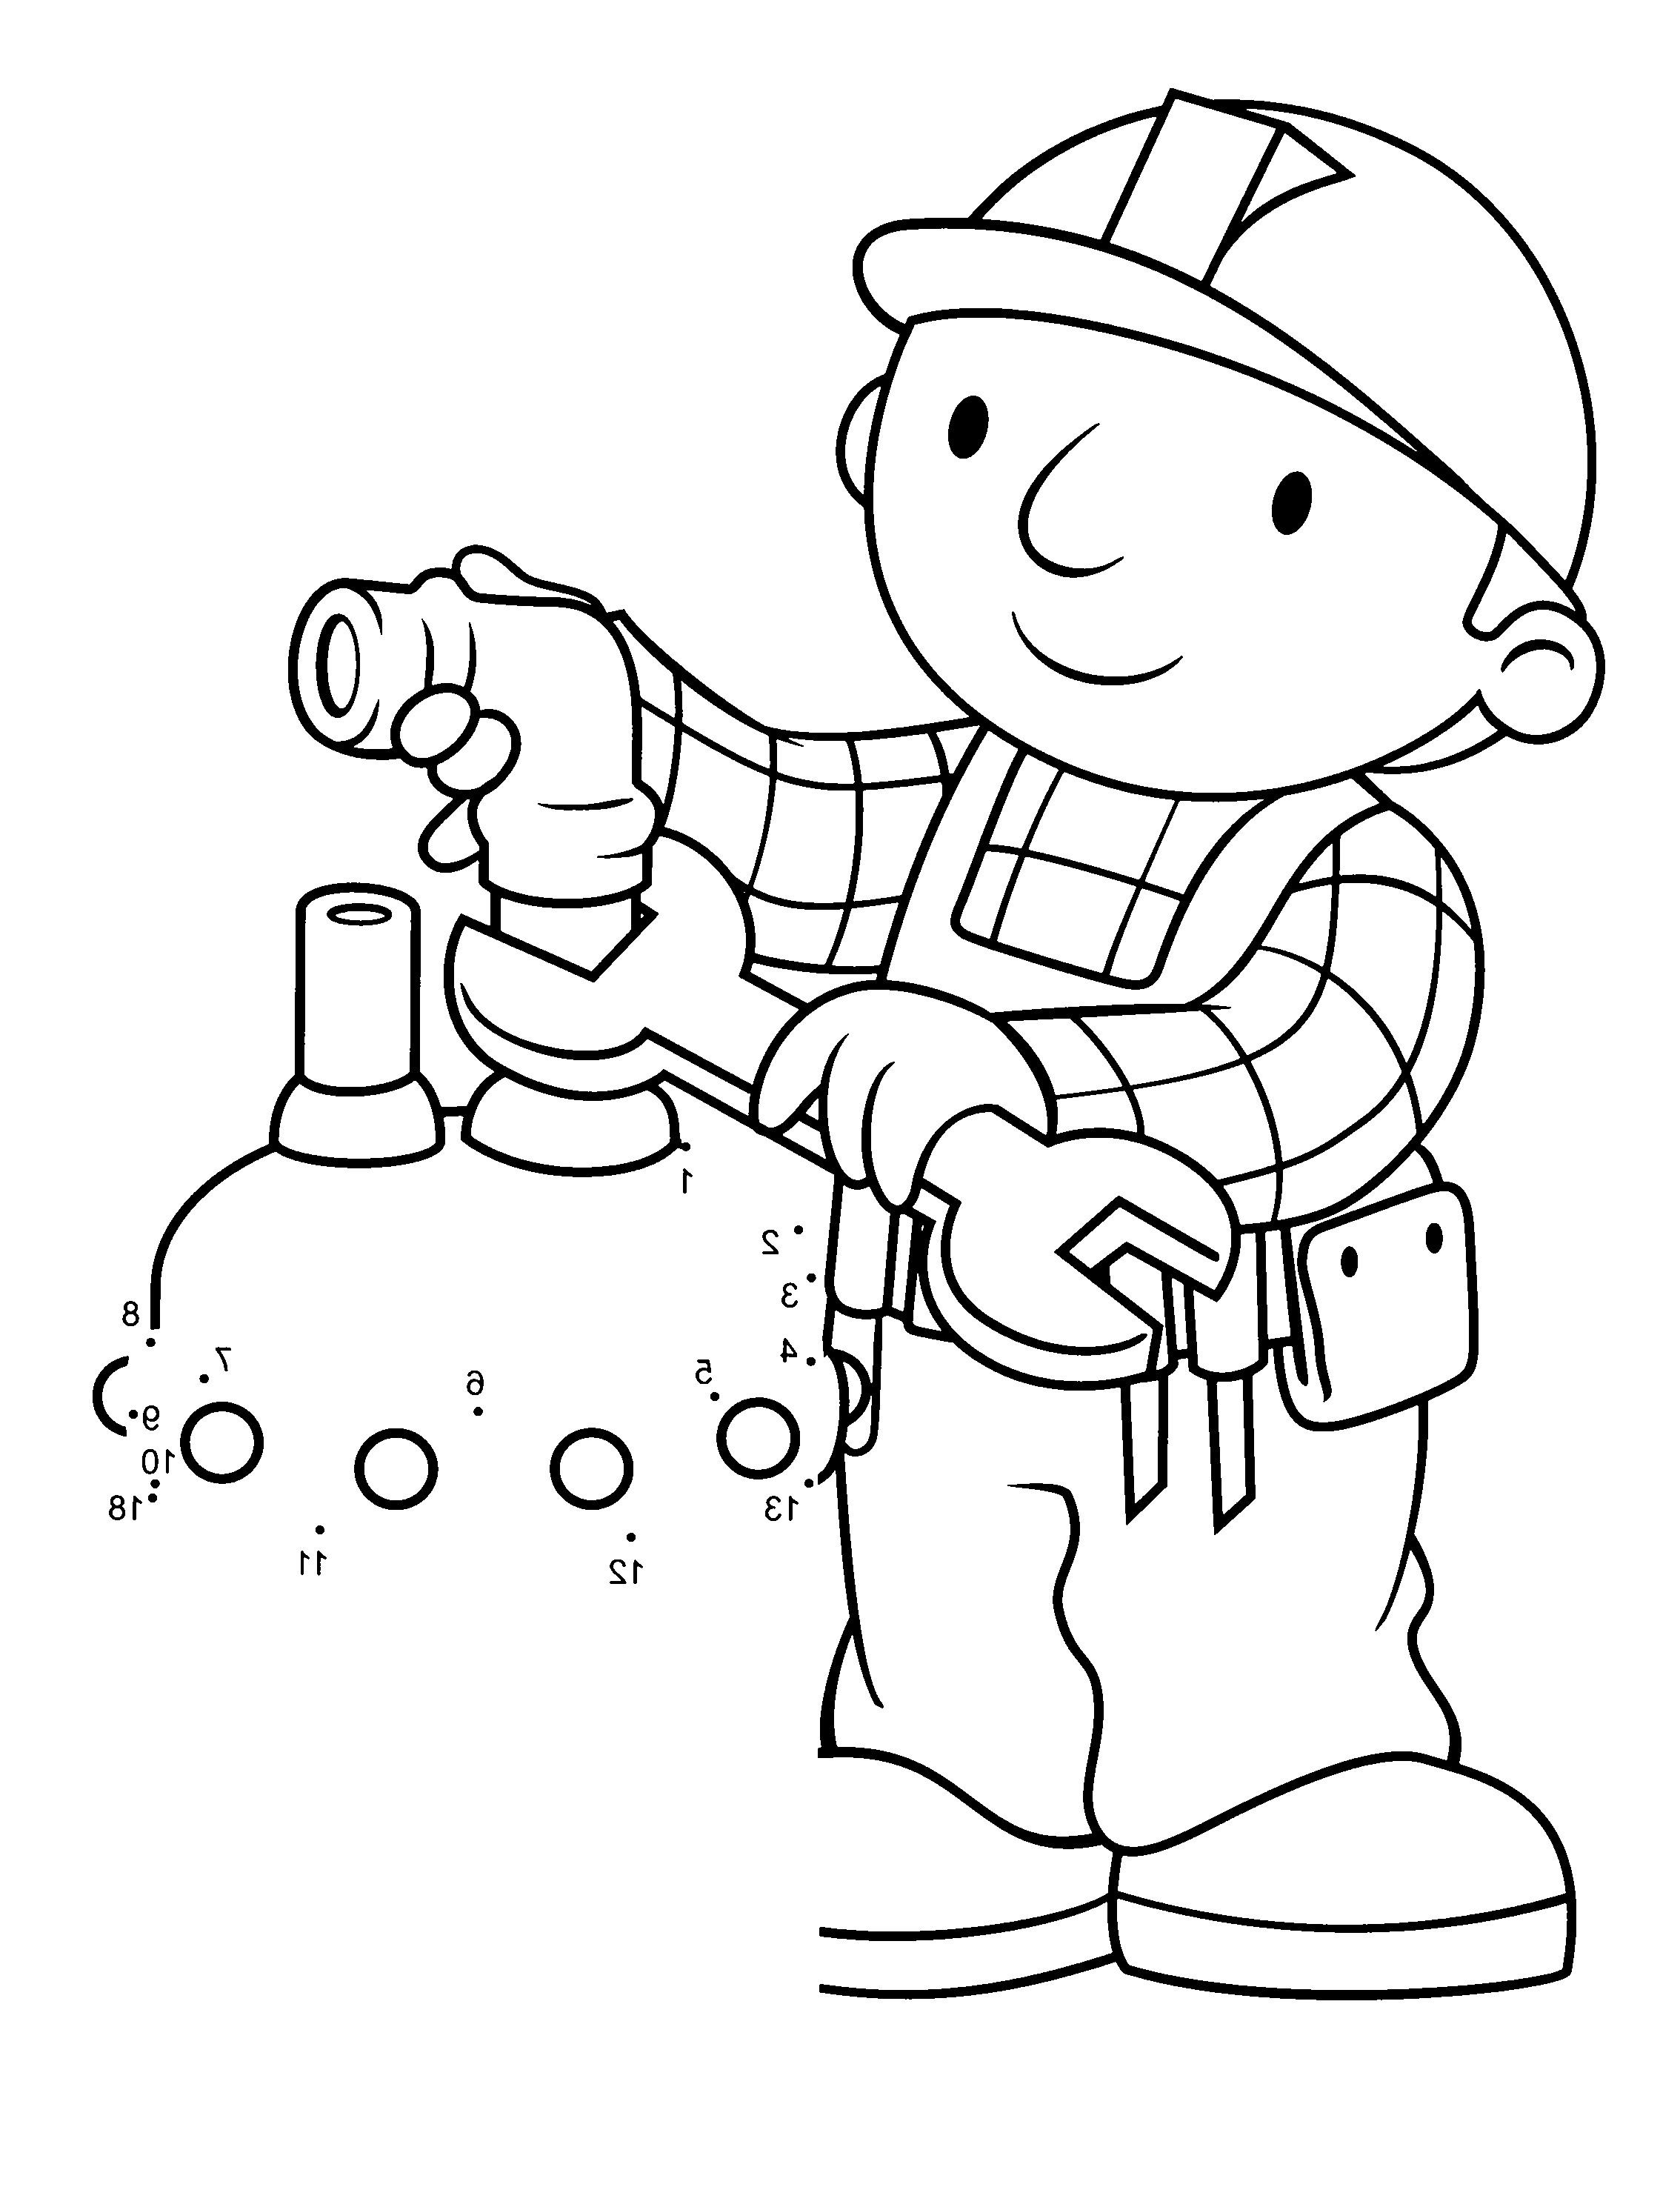 Bob The Builder Fix The Tap Water Coloring For Kids   Coloring ...